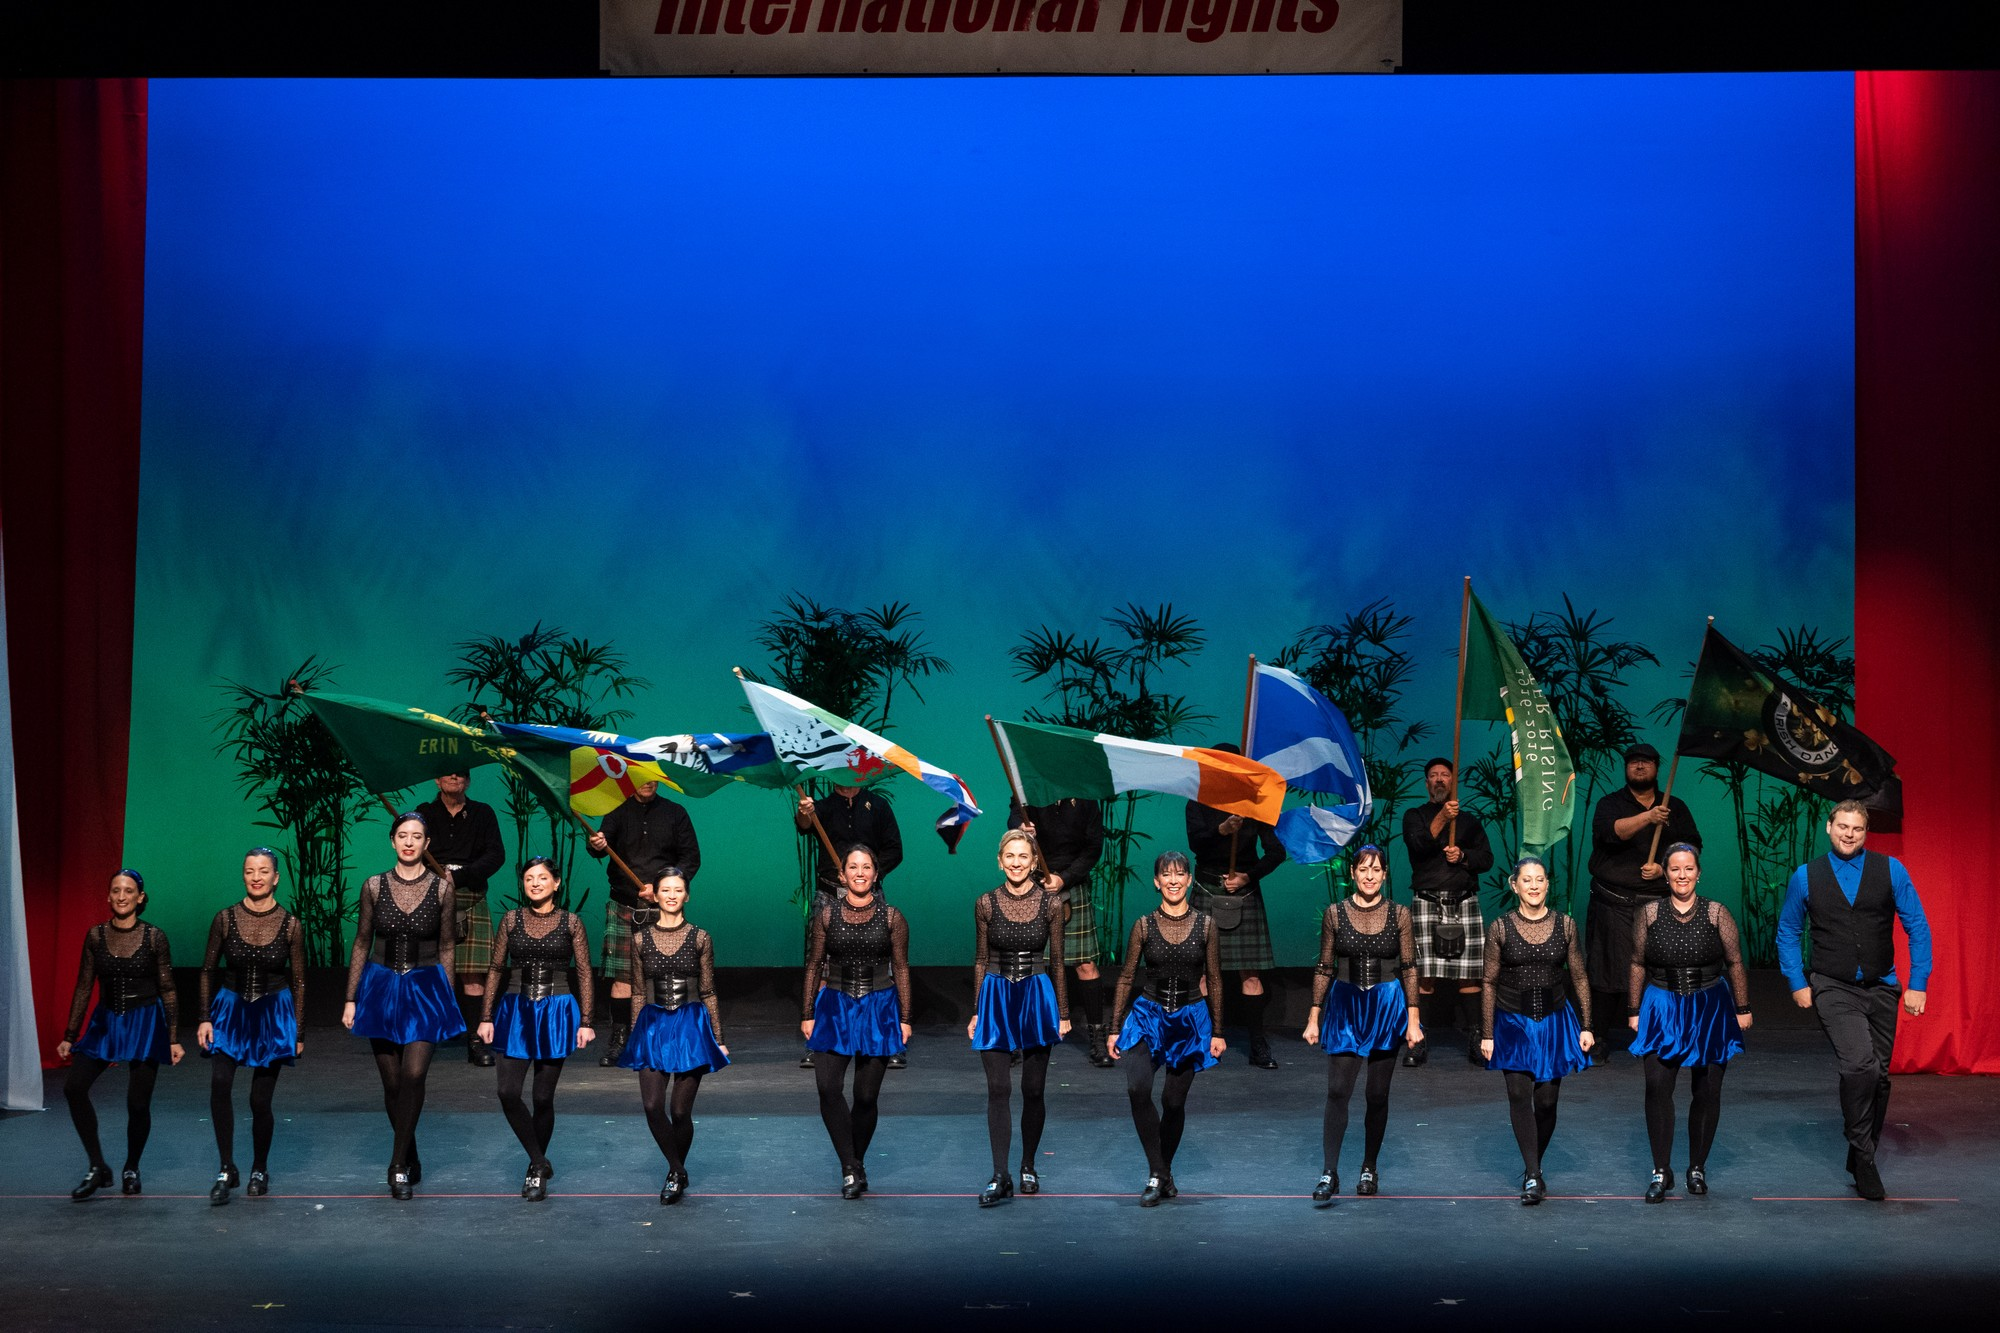 Group of female dancers in line, blue skirts, black tops. In back is line of male dancers holding flags.